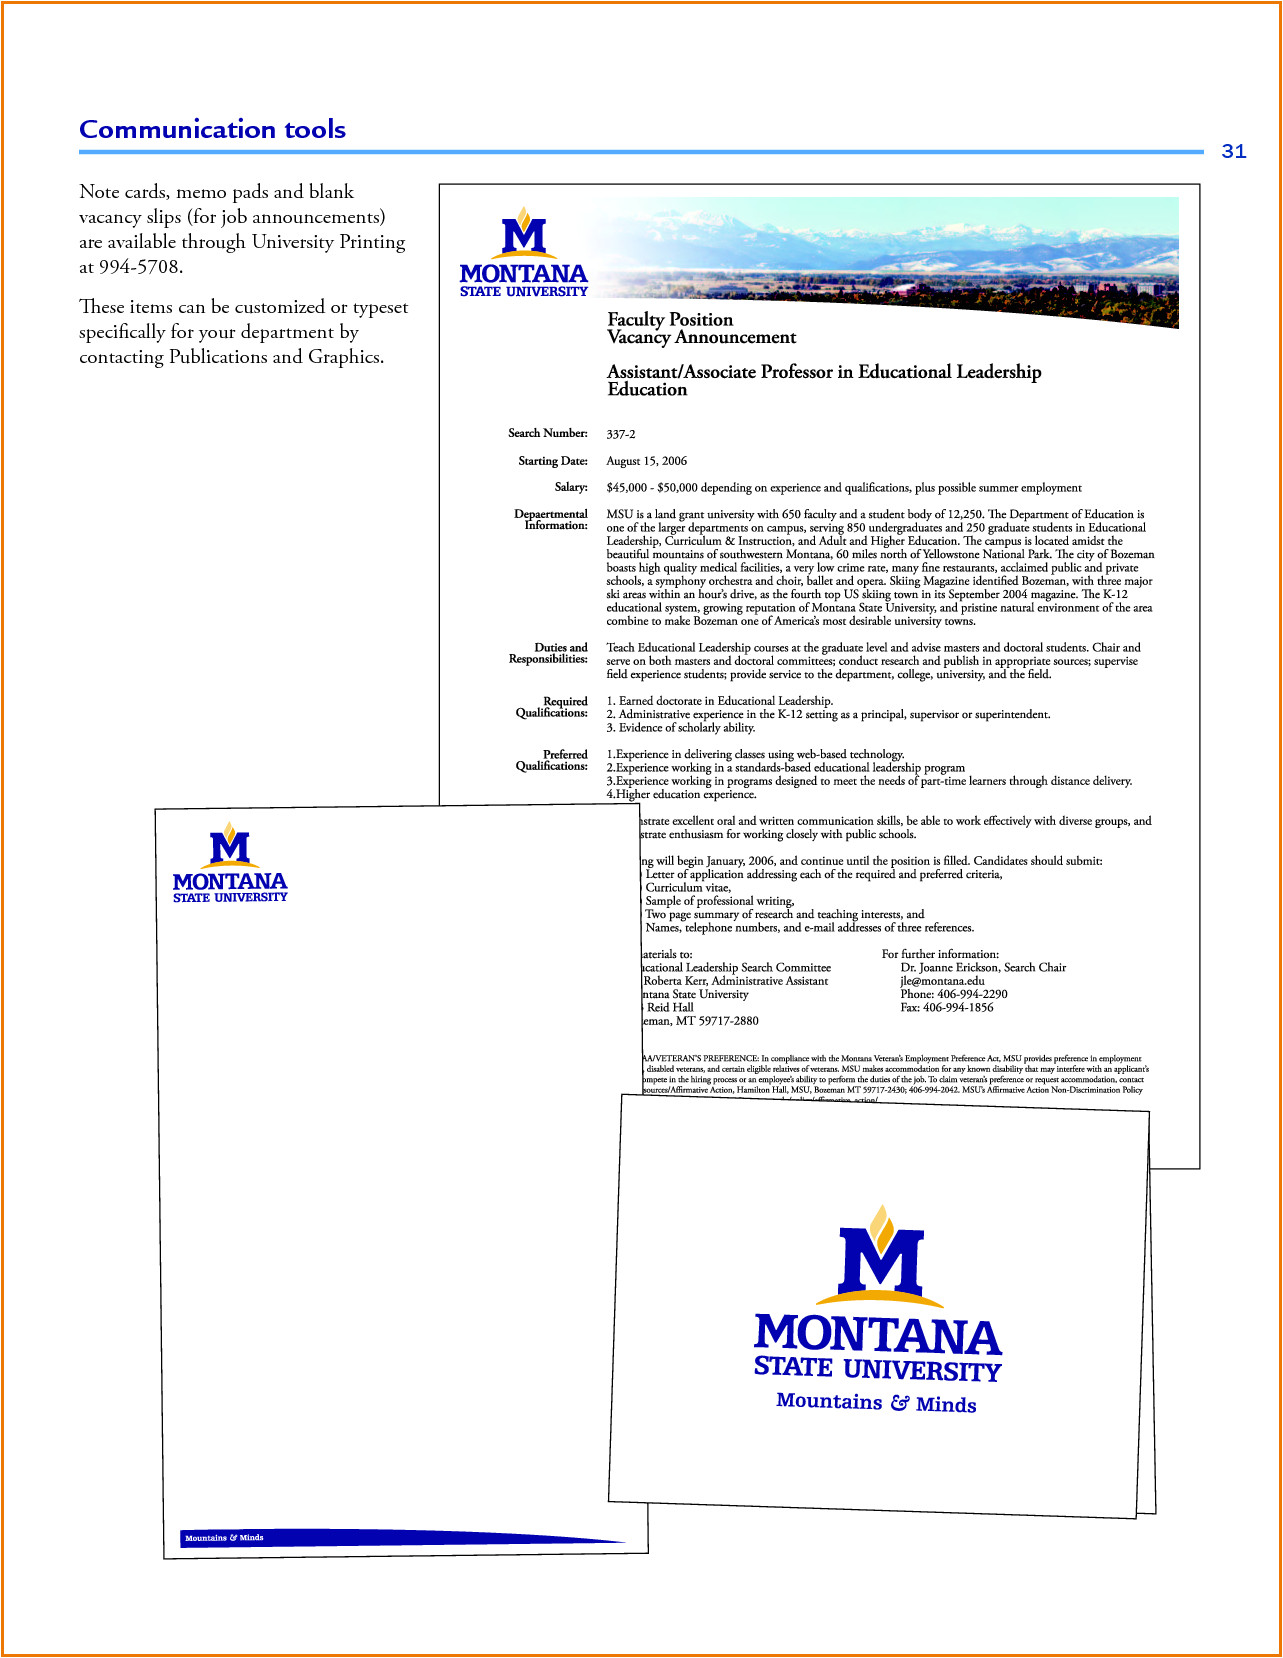 Avery Template 5366 Download 4 Avery Template 5366 Divorce Document